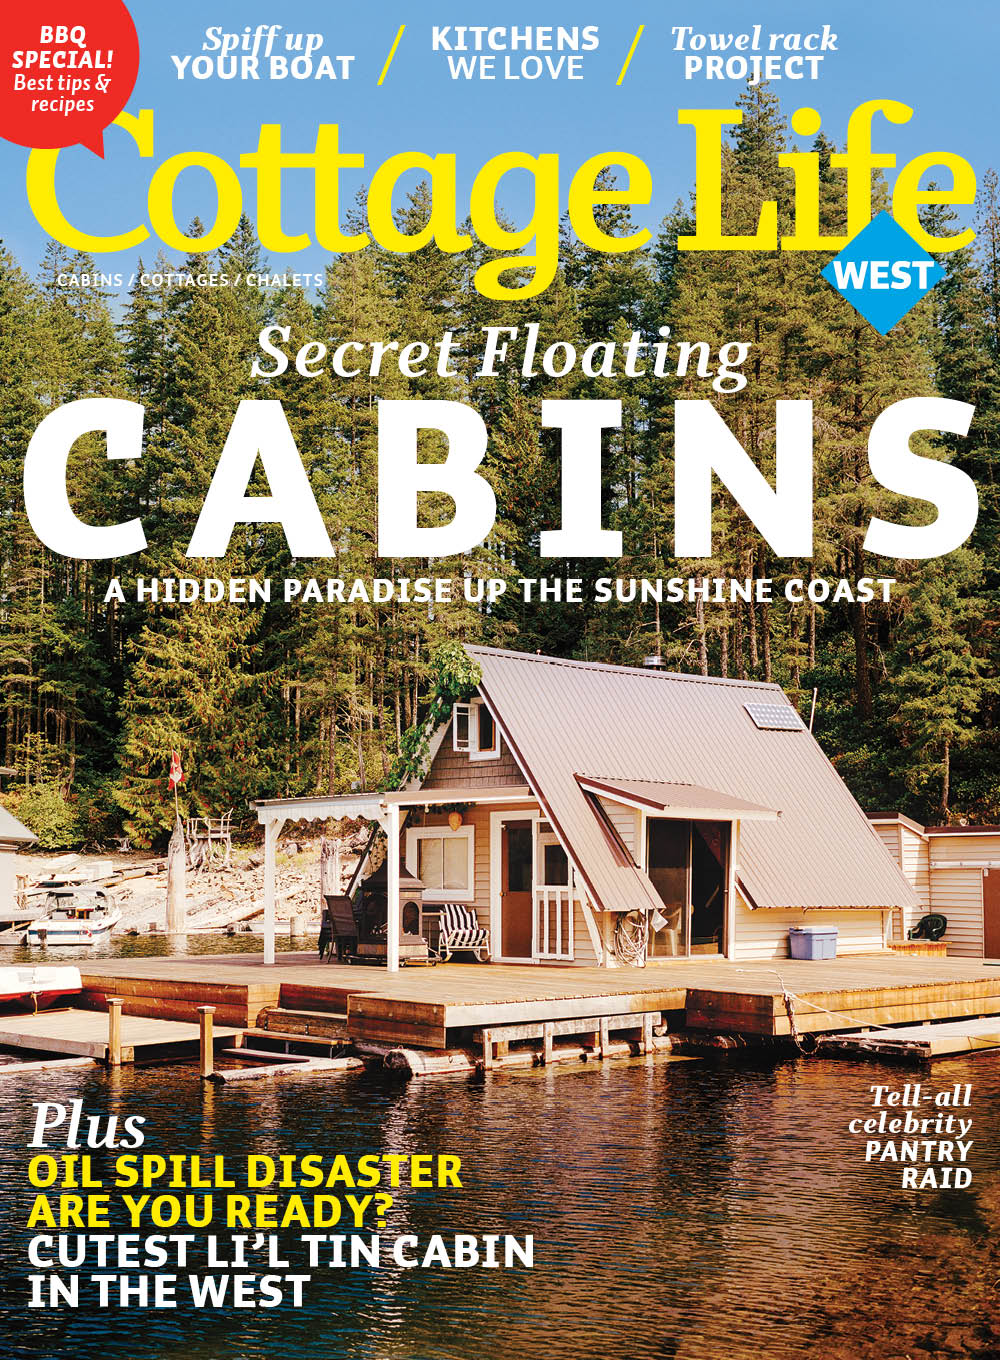 Wayne And I Enjoy Sharing About Off The Grid Float Cabin Living On Powell  Lake, Here In Coastal BC. This Month, We Were Included In An Article About  Float ...